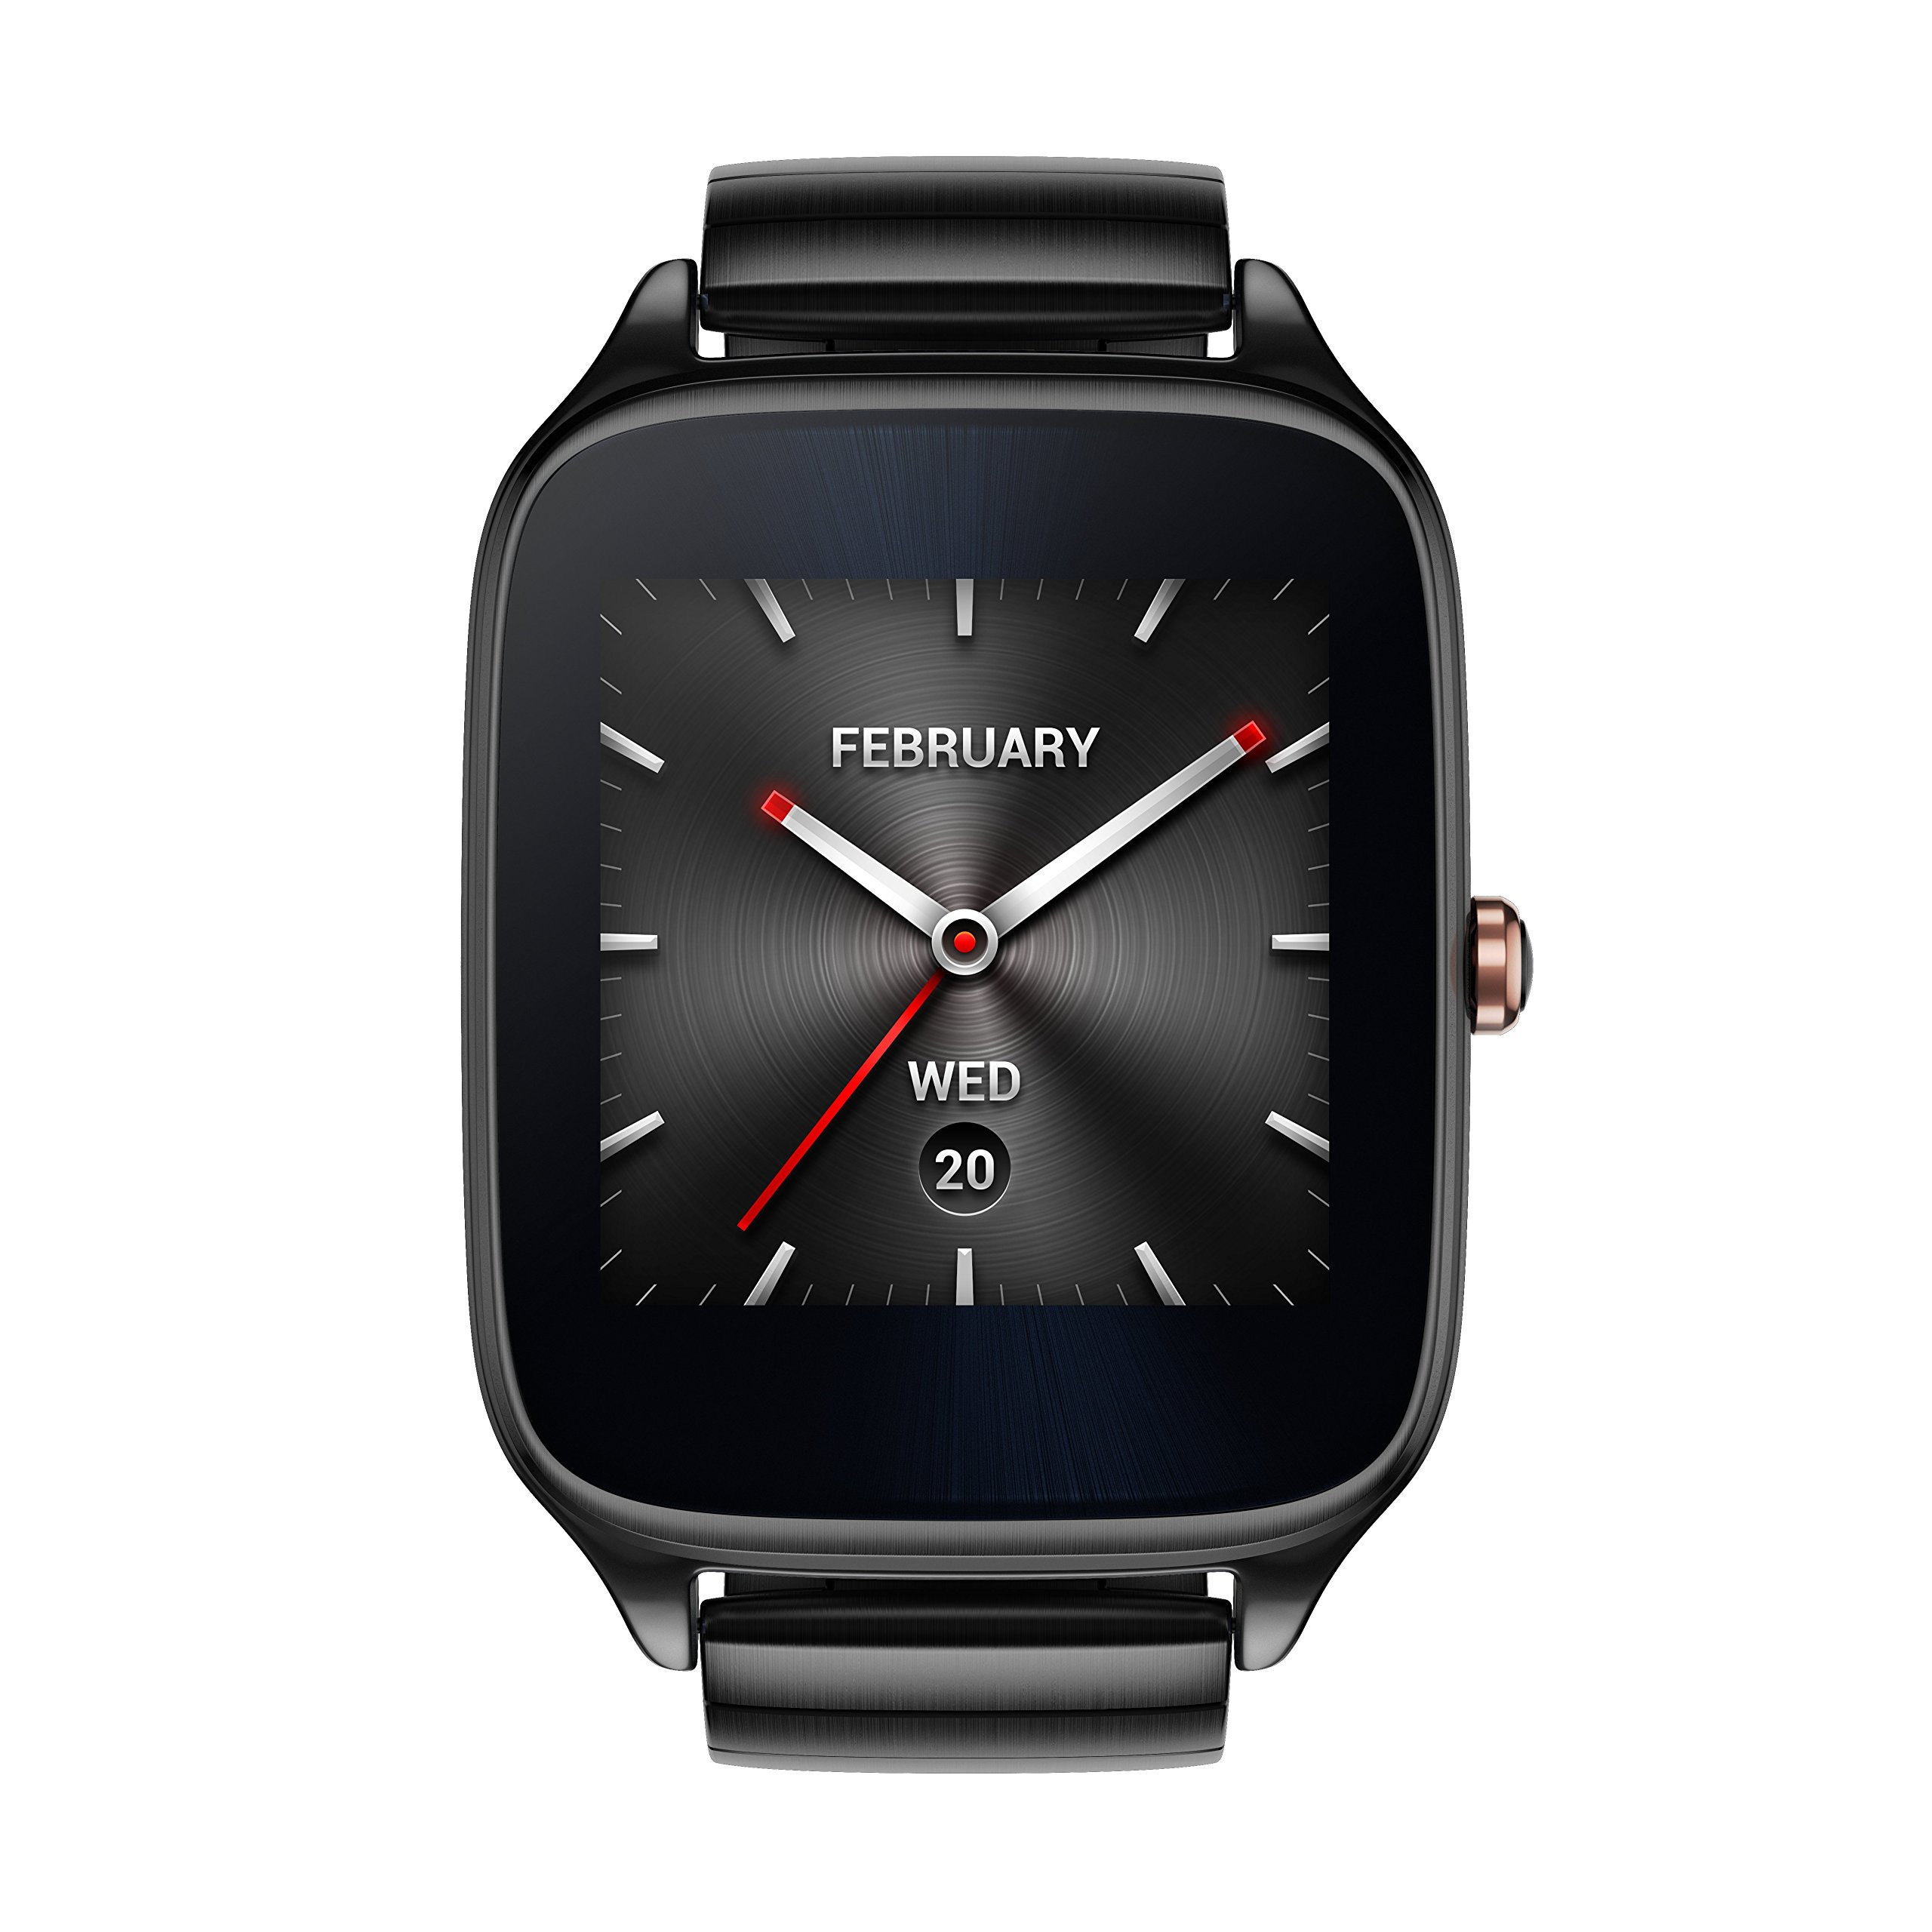 ASUS ZenWatch 2 Gunmetal Gray 41mm Smart Watch with HyperCharge Battery, 1.63-inch AMOLED Gorilla Glass 3 TouchScreen, 4GB Storage, IP67 Water Resistant by Asus